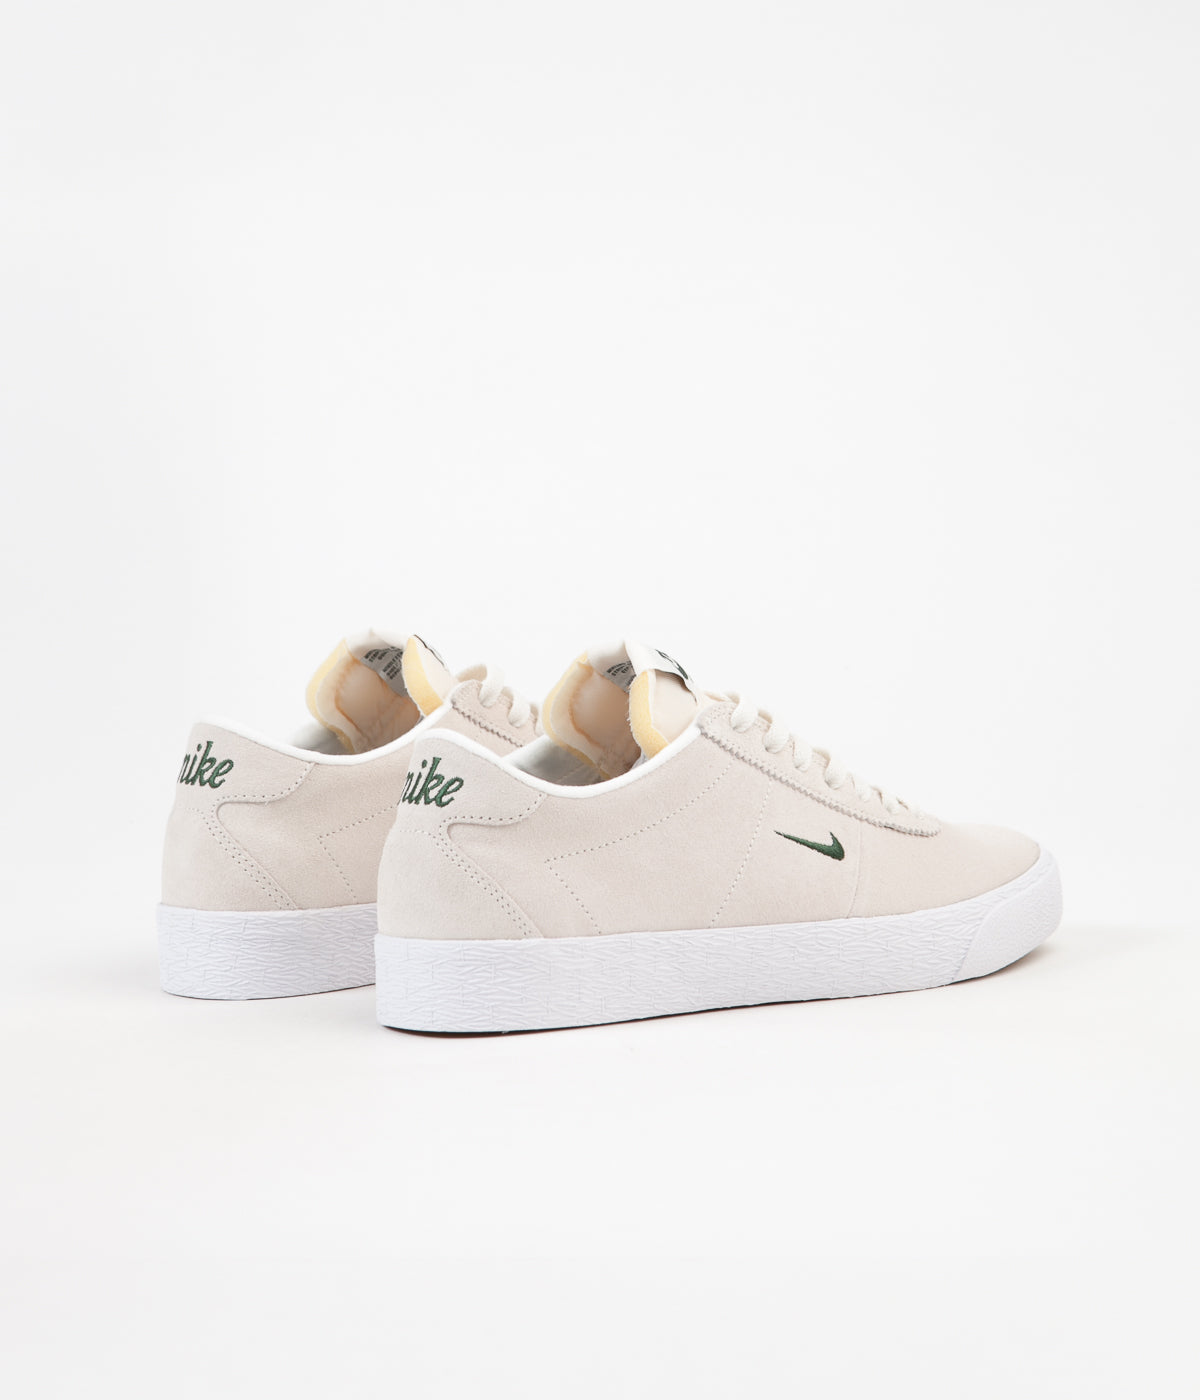 new lower prices various colors huge sale Nike SB Bruin Ultra Shoes - Sail / Fir - White - Gum Light ...